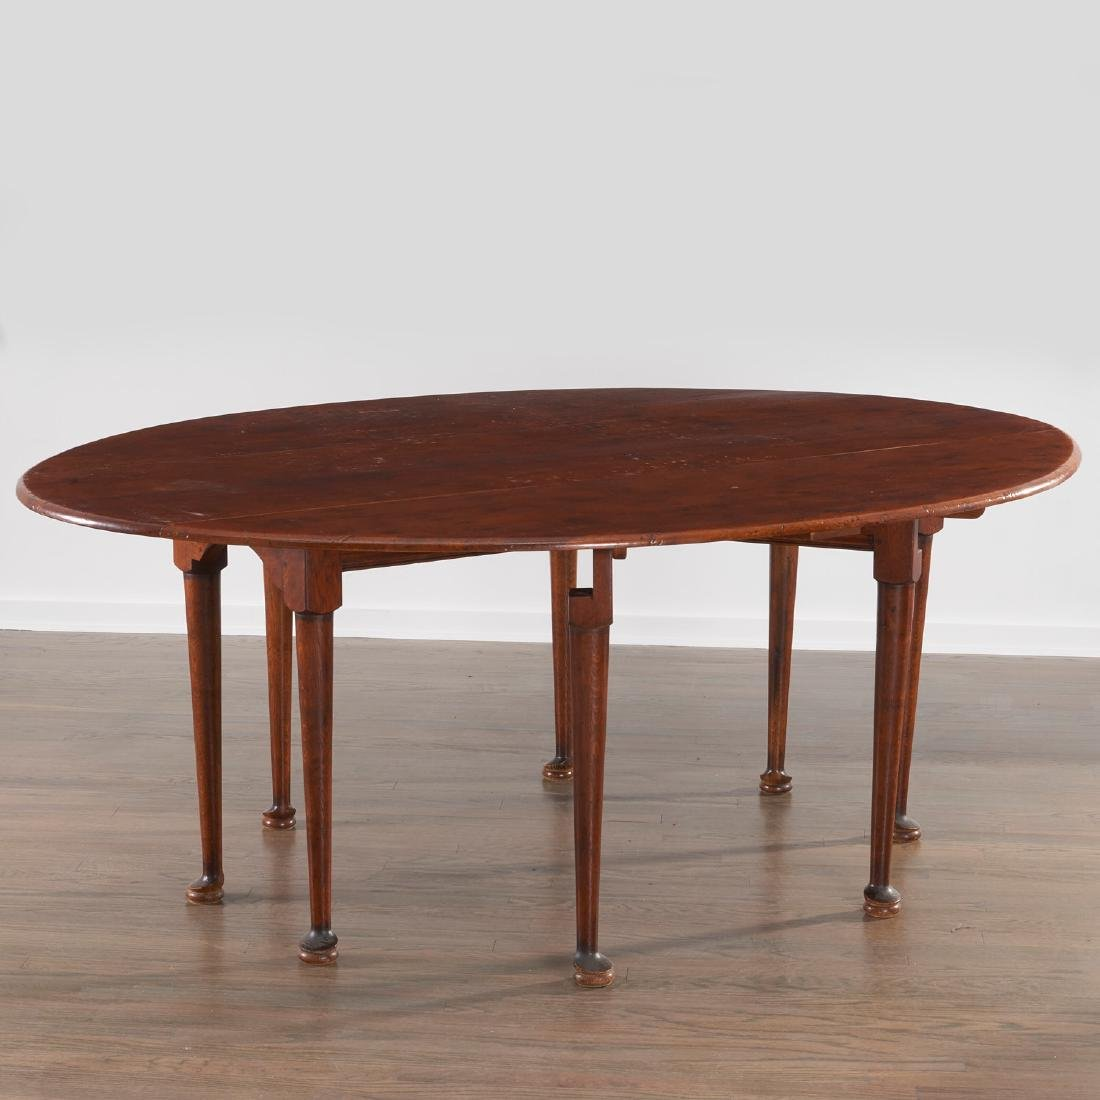 George II style drop leaf hunt table - 4